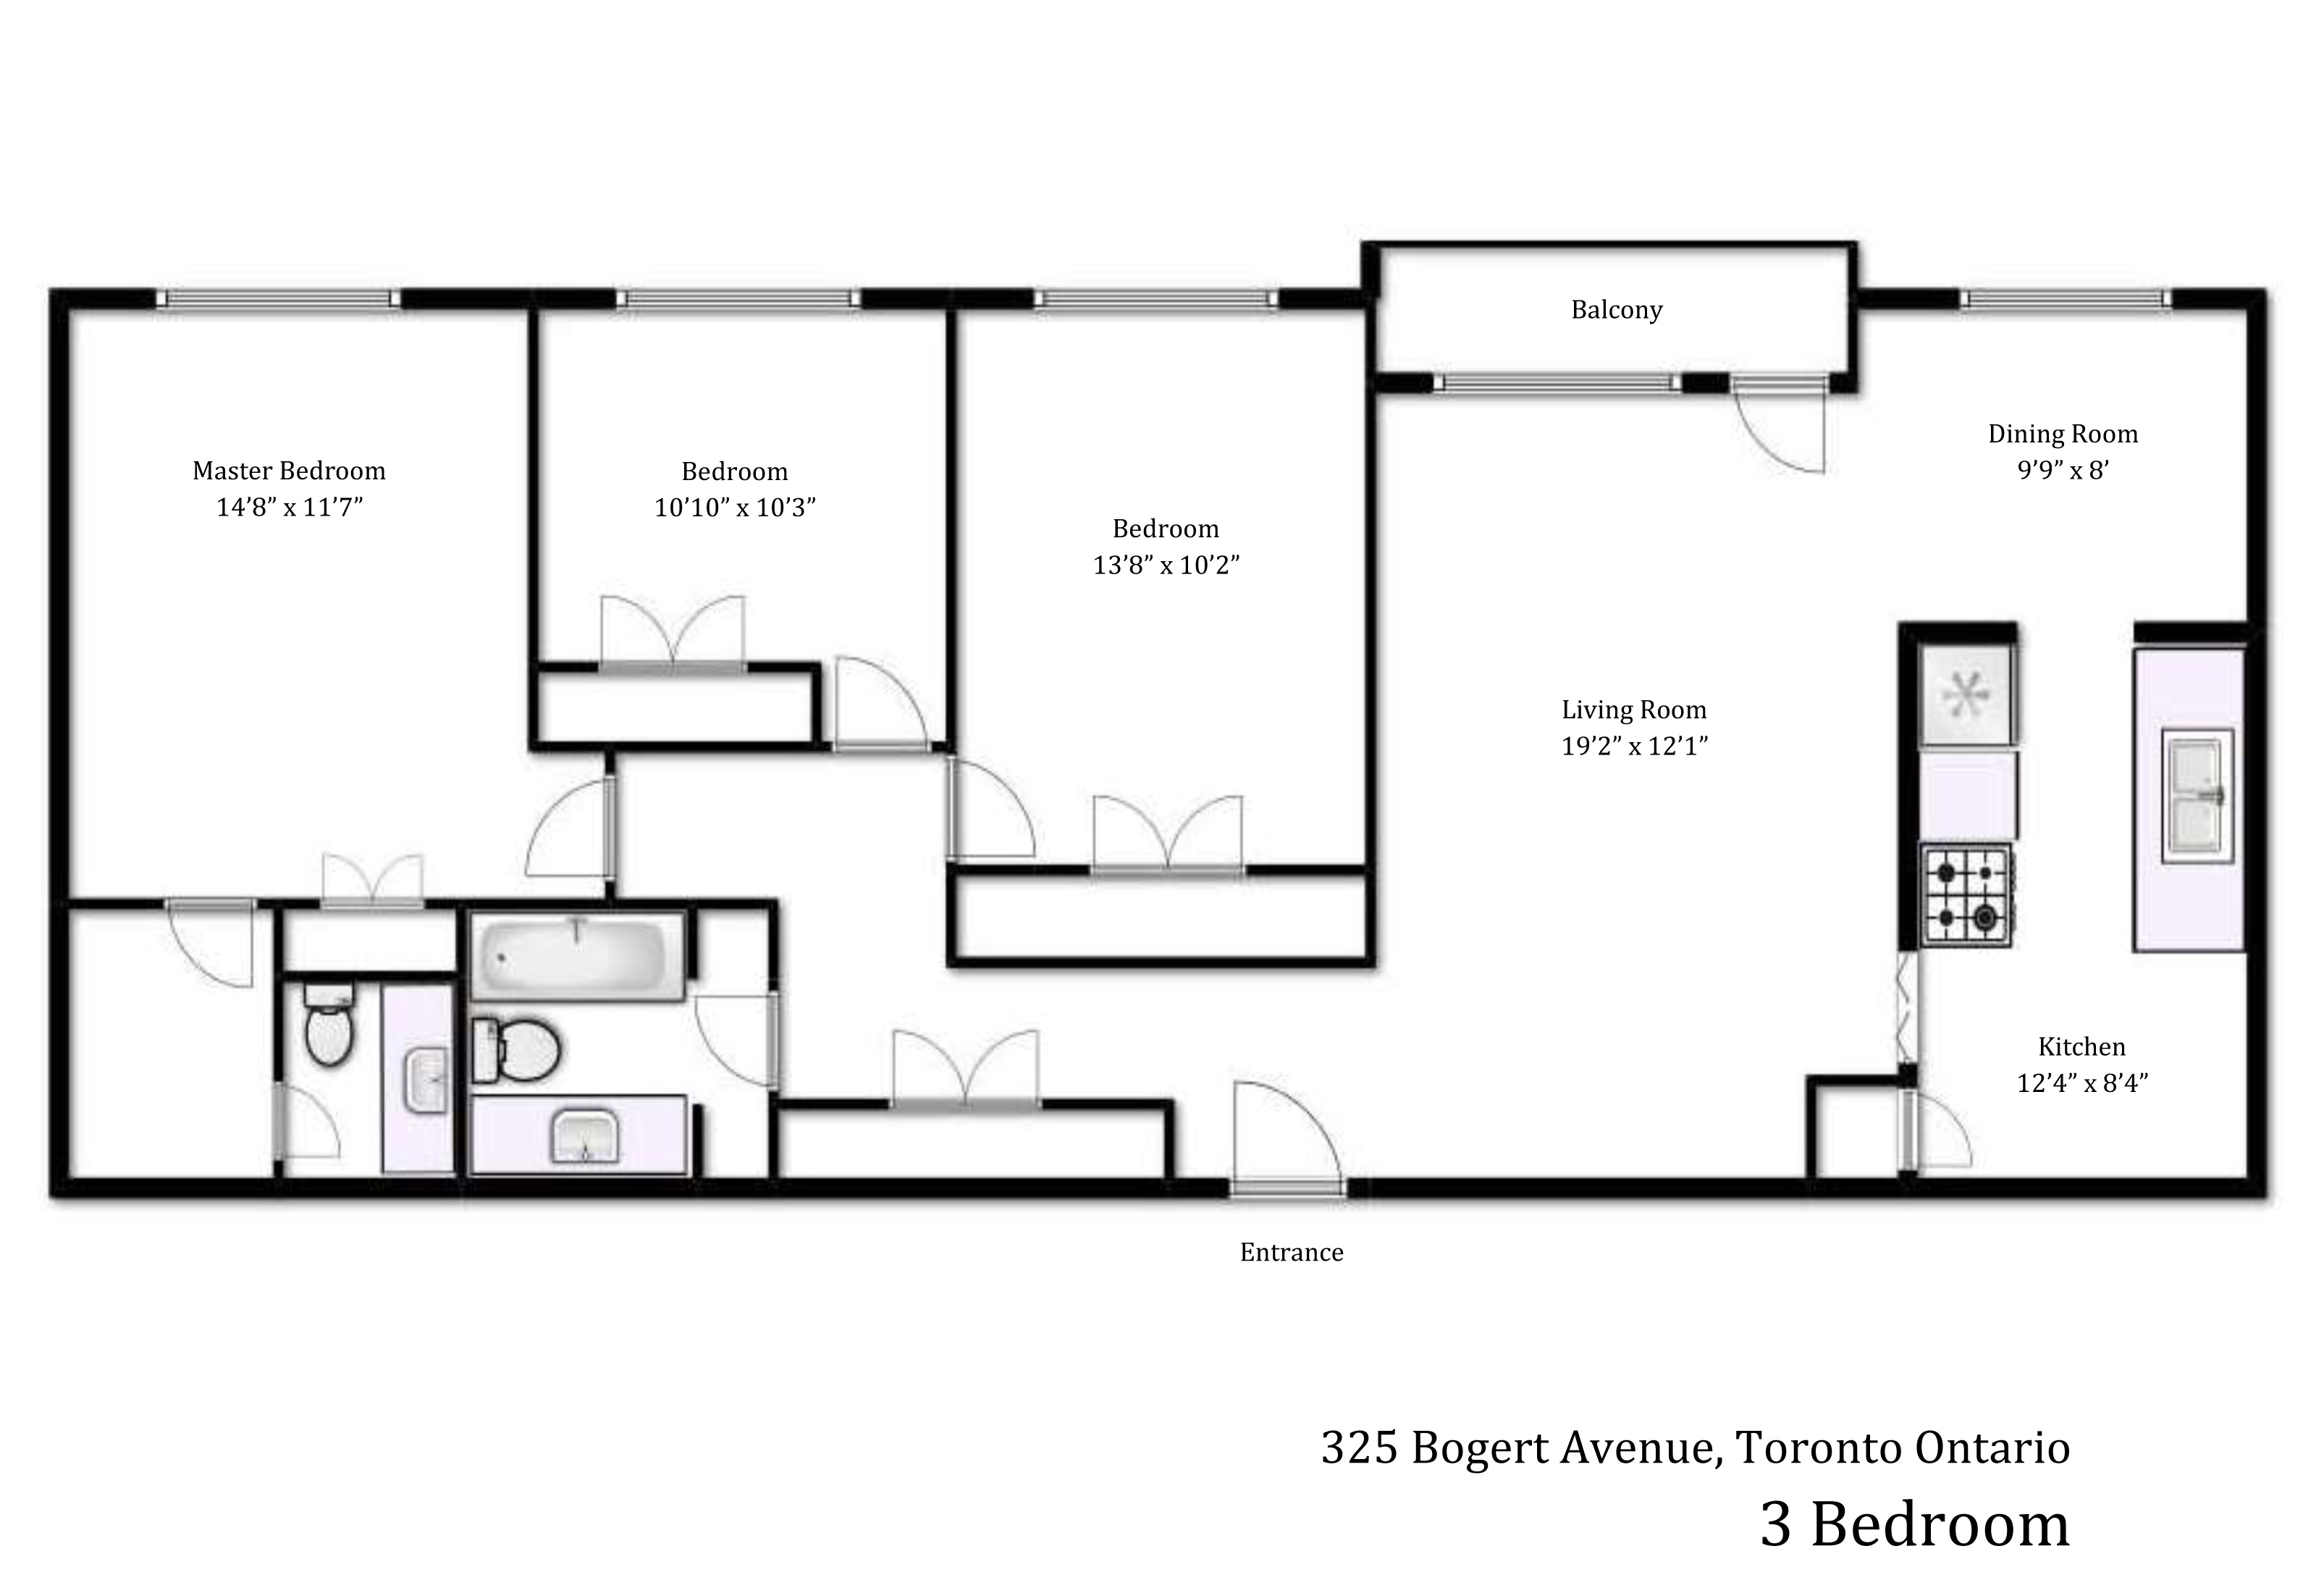 Gallery heath residence 325 bogert ave Floor plan of a 3 bedroom house